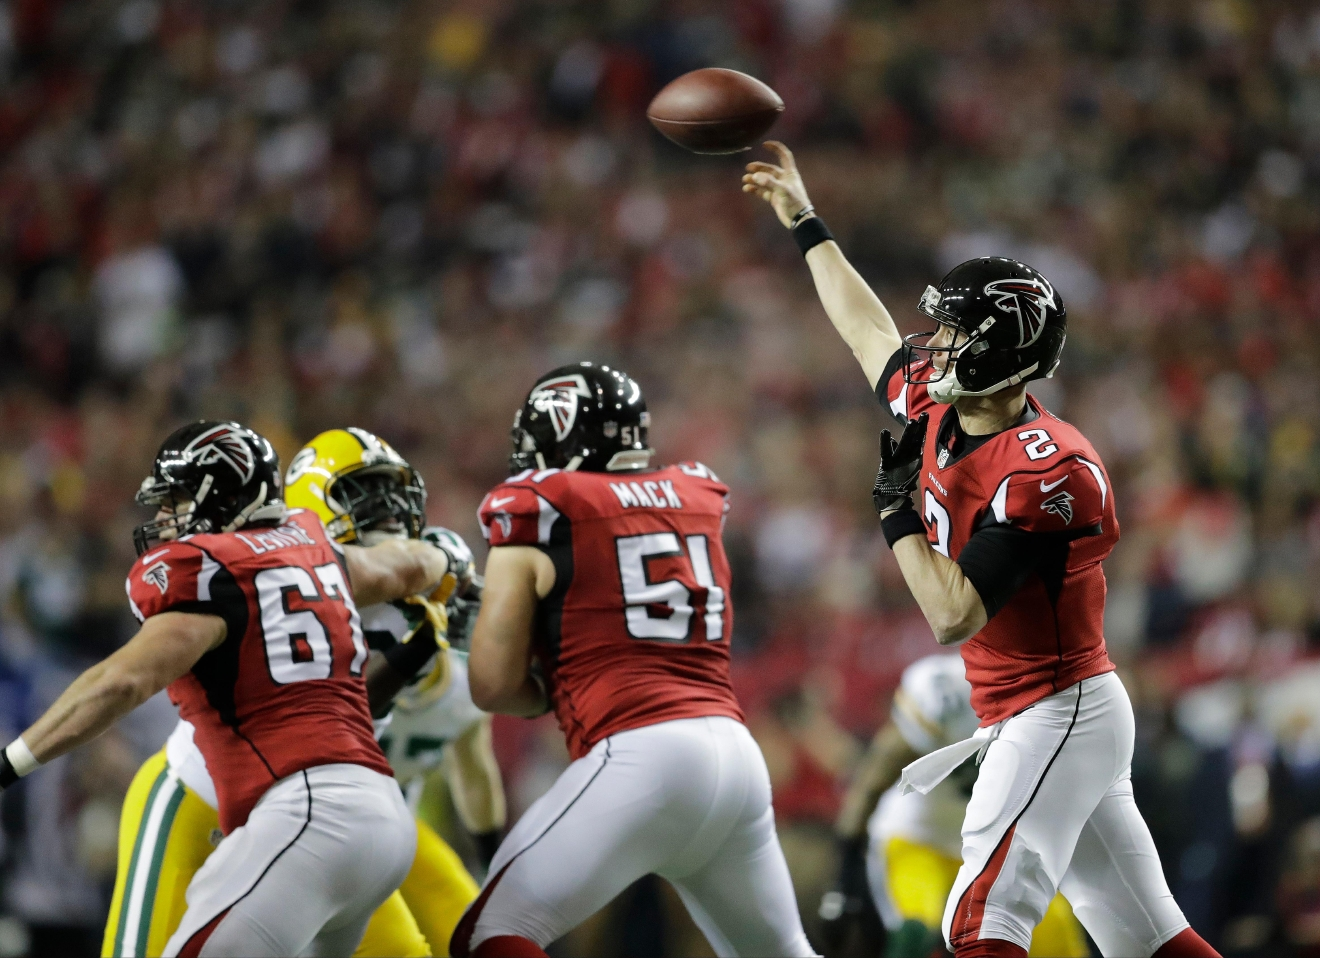 Atlanta Falcons' Matt Ryan throws during the first half of the NFC championship game against the Green Bay Packers, Sunday, Jan. 22, 2017, in Atlanta. (AP Photo/David Goldman)